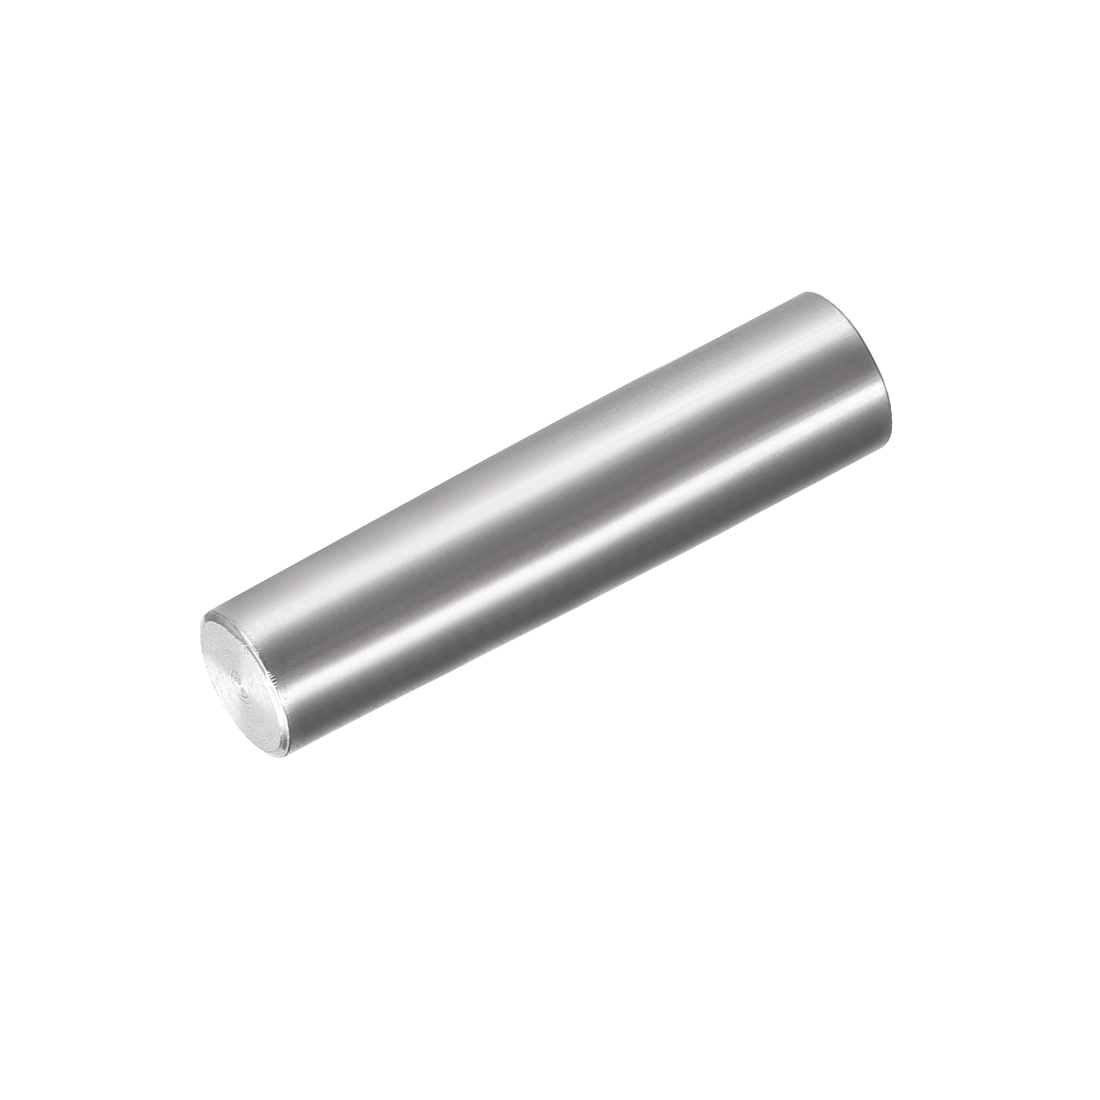 8mm x 35mm 1:50 Taper Pin 304 Stainless Steel Shelf Support Pin Fasten Elements